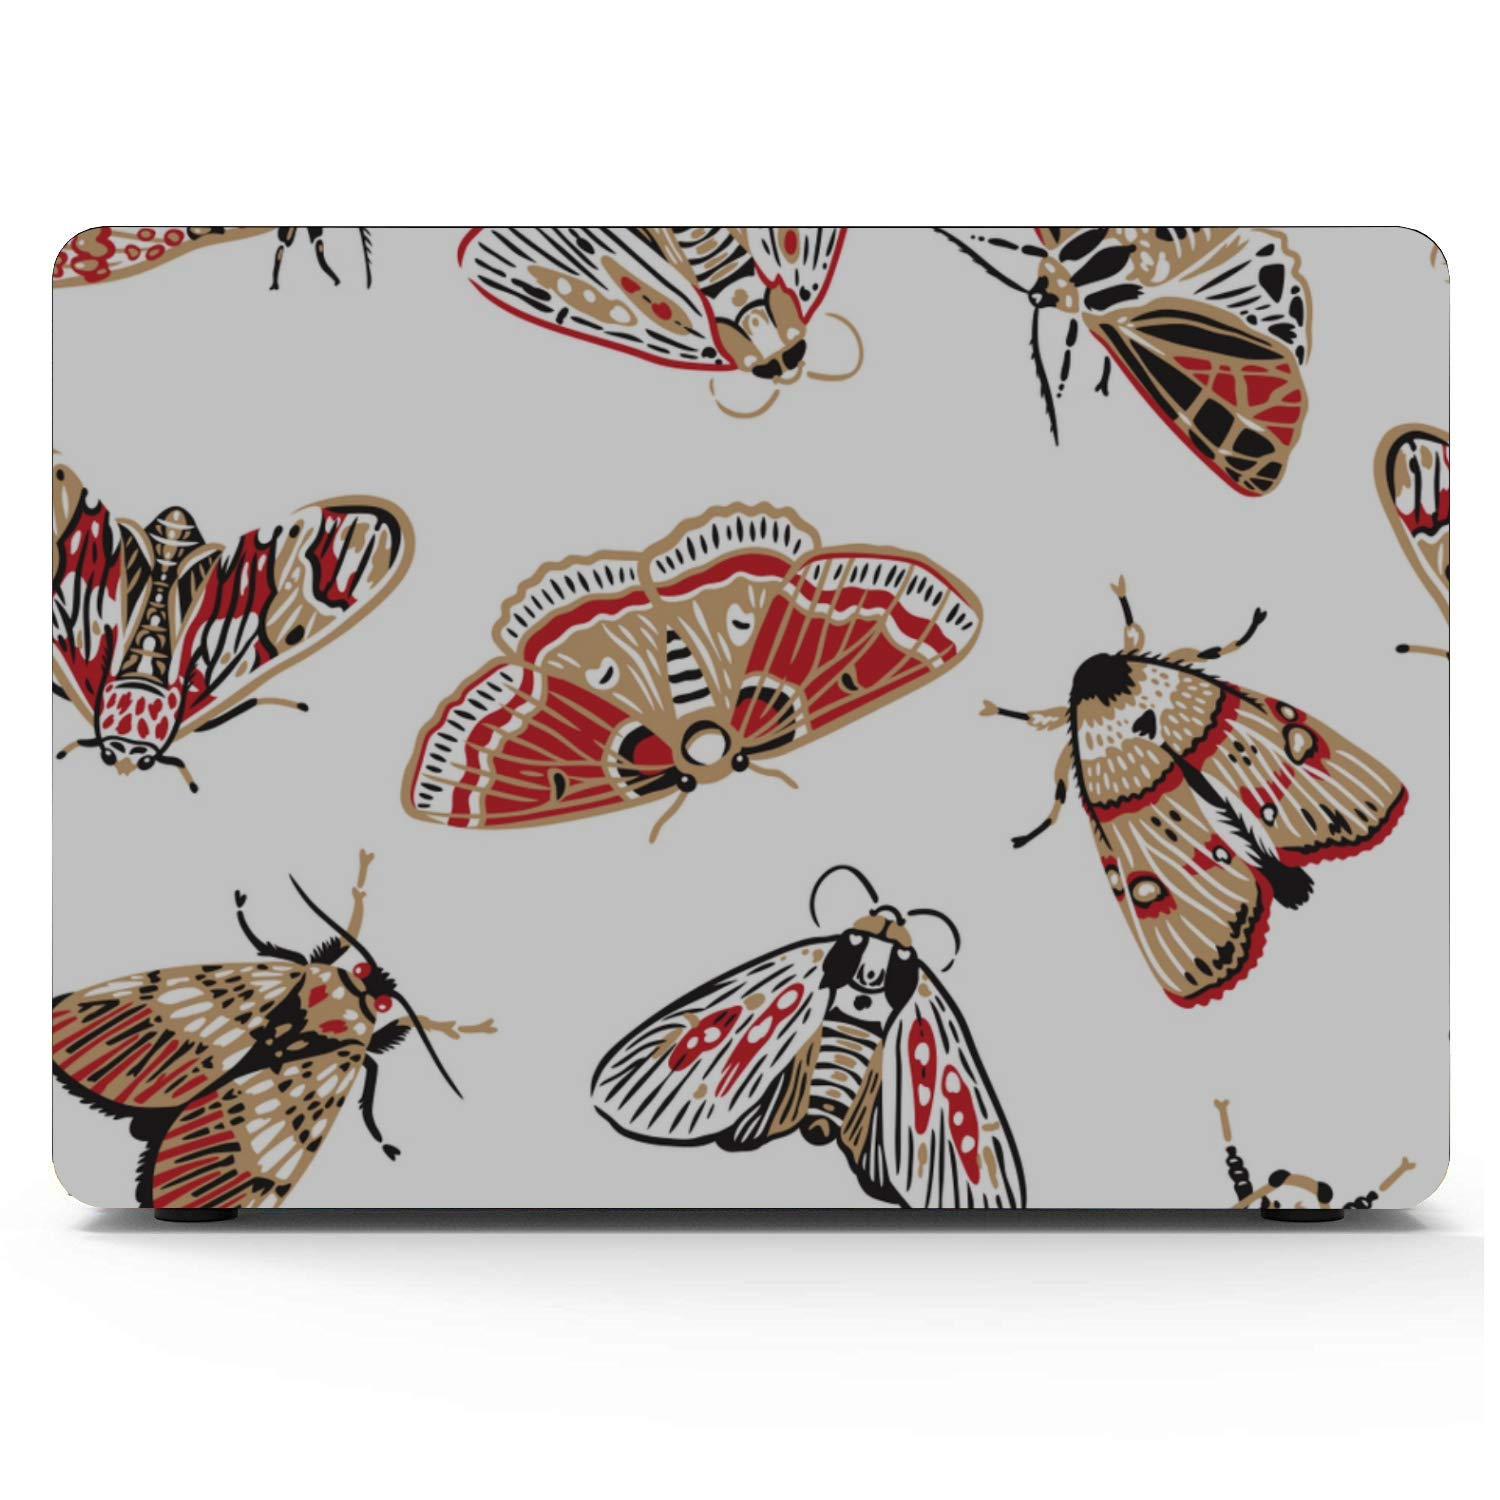 Hermosa y Brillante Polilla de Dibujos Animados Macbook Air/Pro 11/12/13/15 Inch Estuche de plástico Estuche rígido Carcasa Macbook Pro Fundas Macbook Air Keyboard Protector Apple Computer Cover: Amazon.es: Electrónica